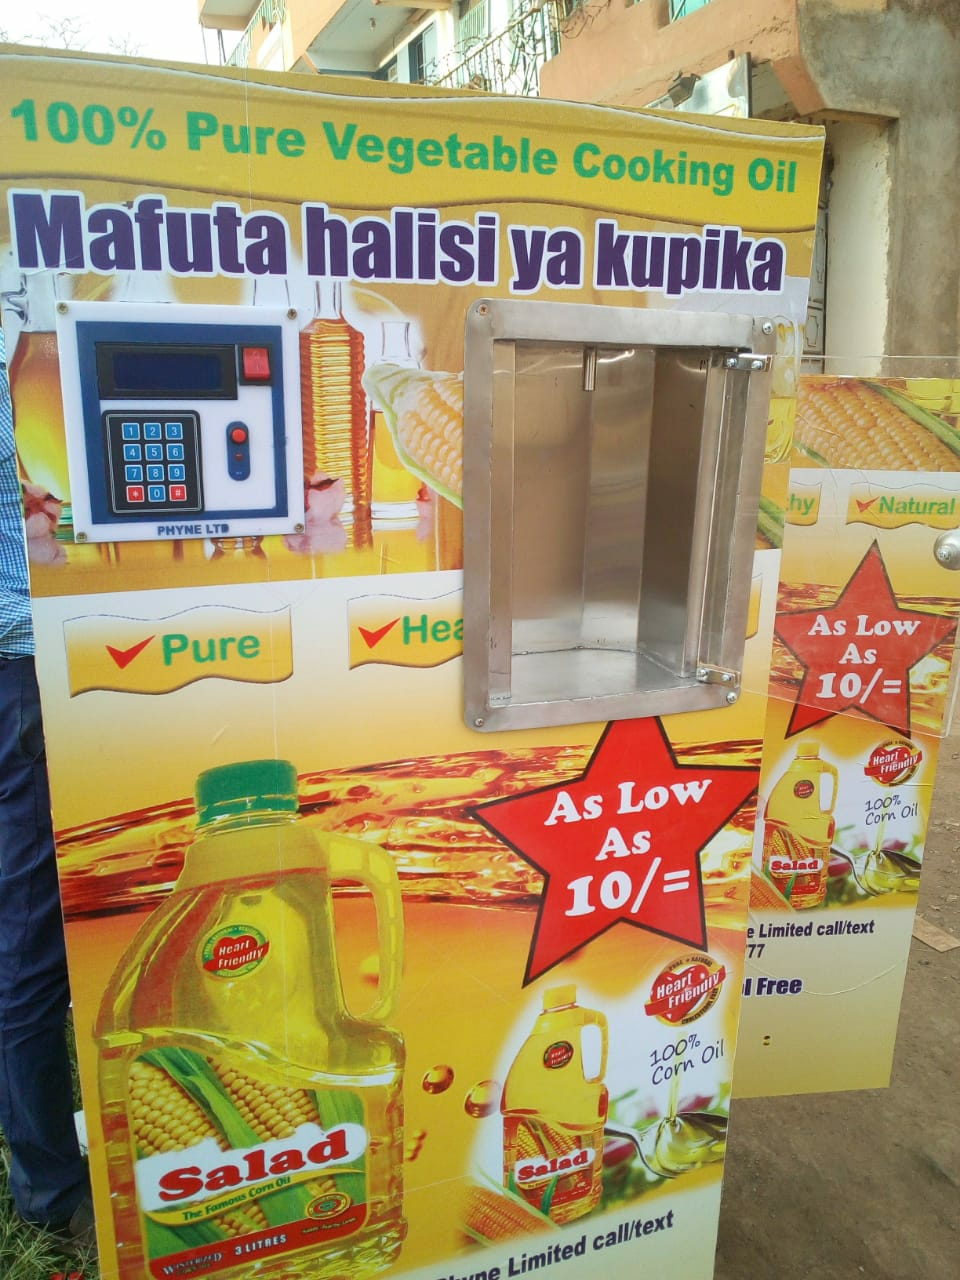 milk ATM/salad oil ATM vending machine - Biashara Kenya